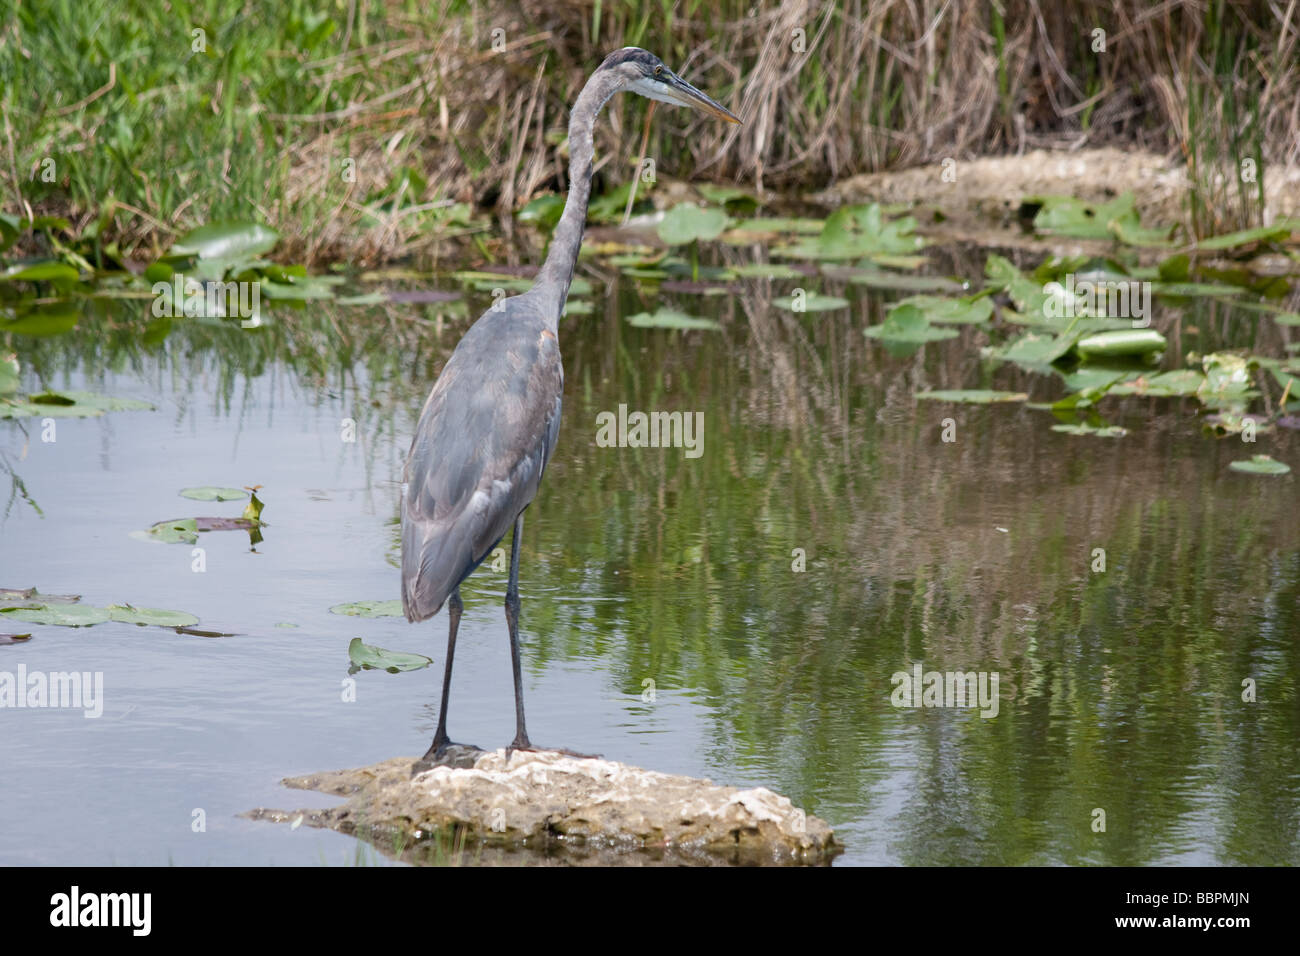 Blue herons and other birds abound on the Anhinga Trail at Royal Palm, in the Everglades National Park, Florida. - Stock Image